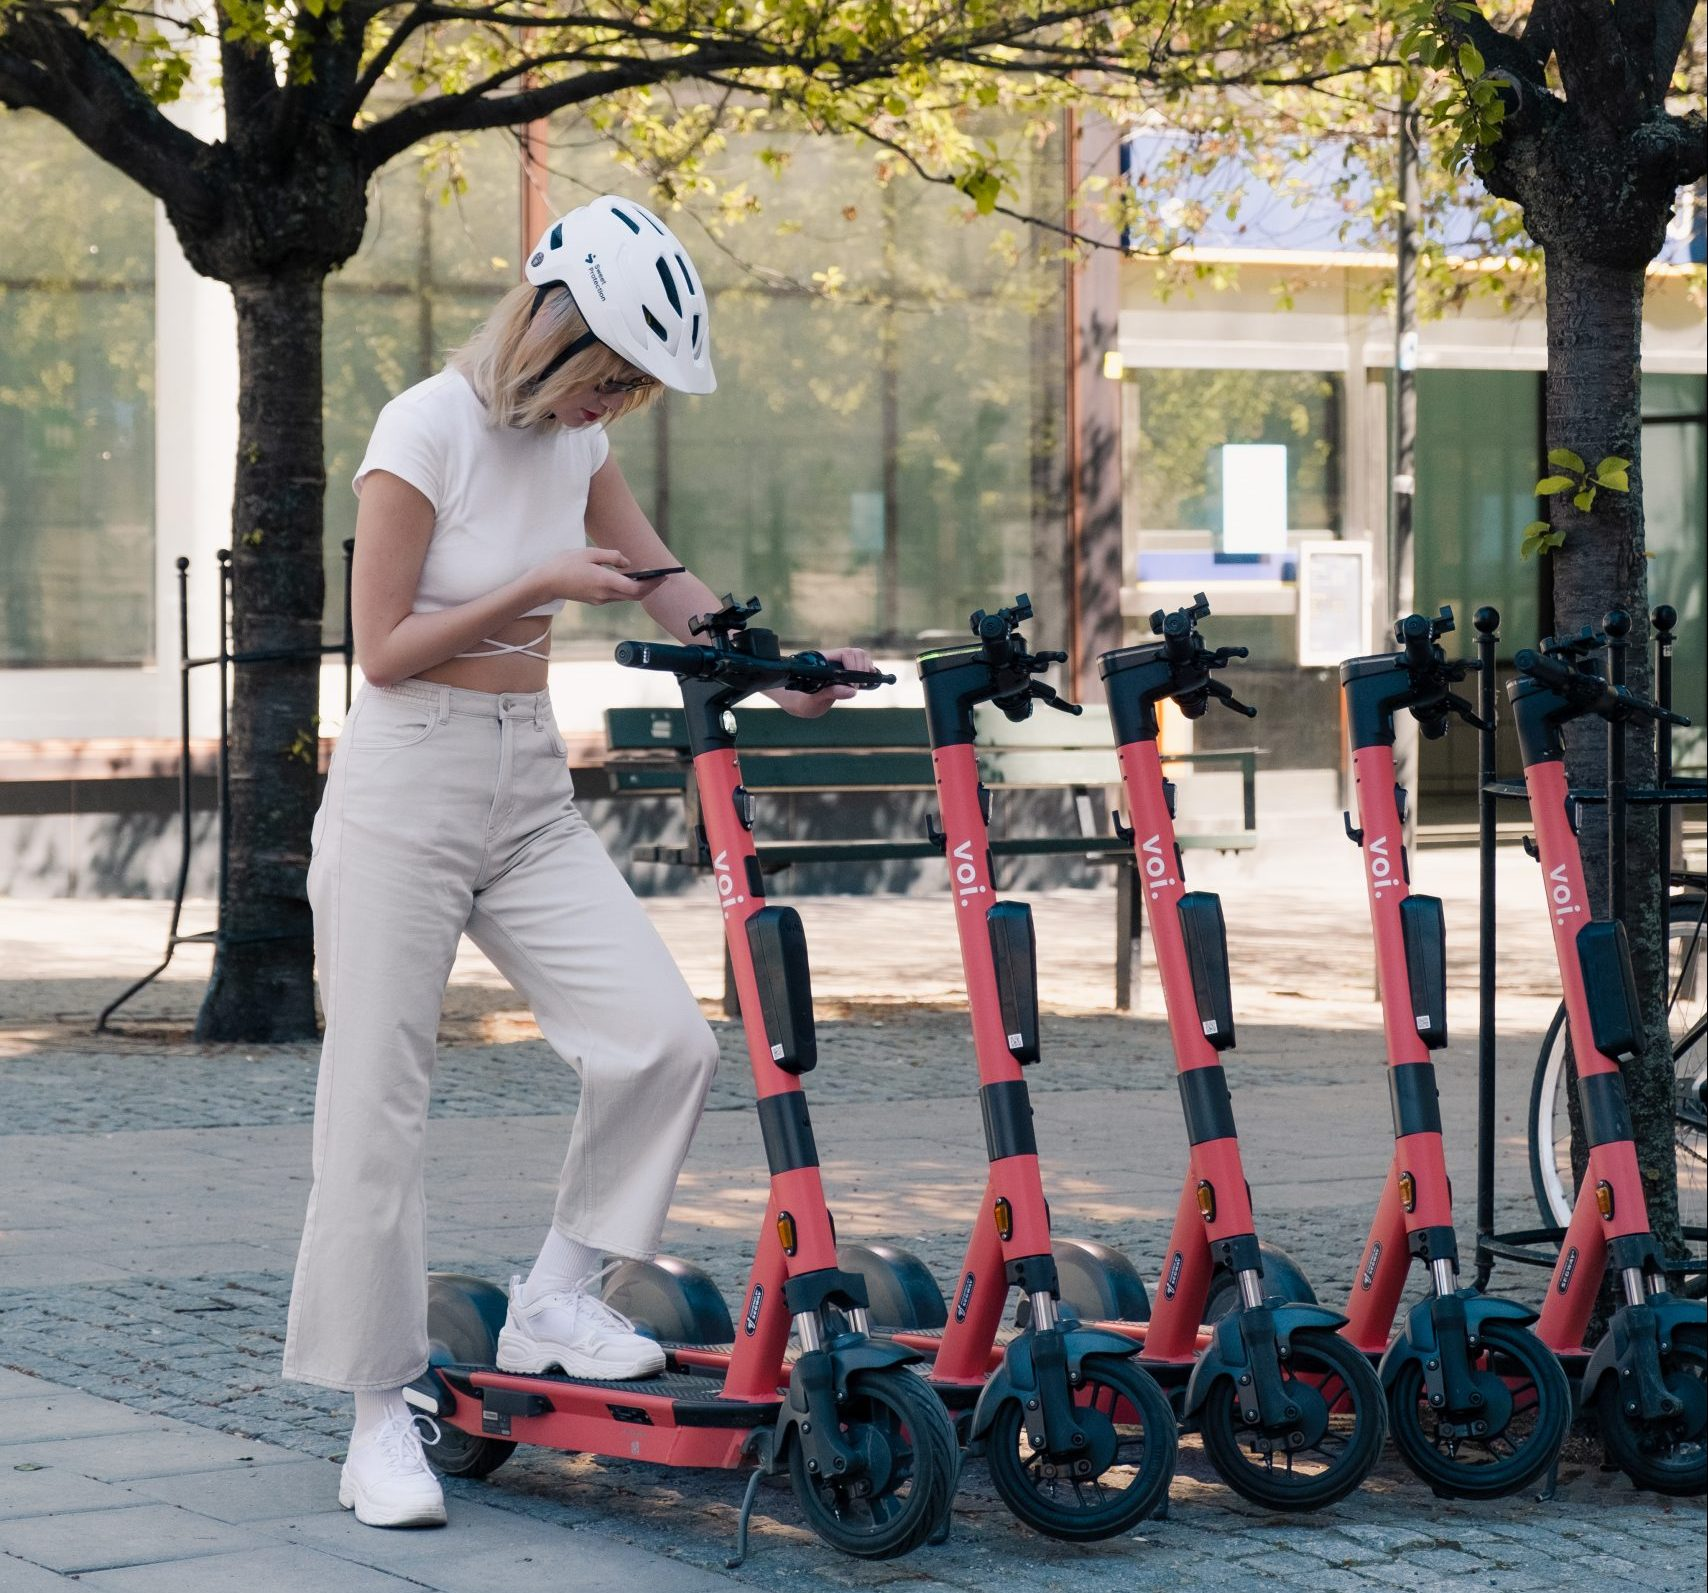 Tech that nudges riders into better parking behaviour is having results